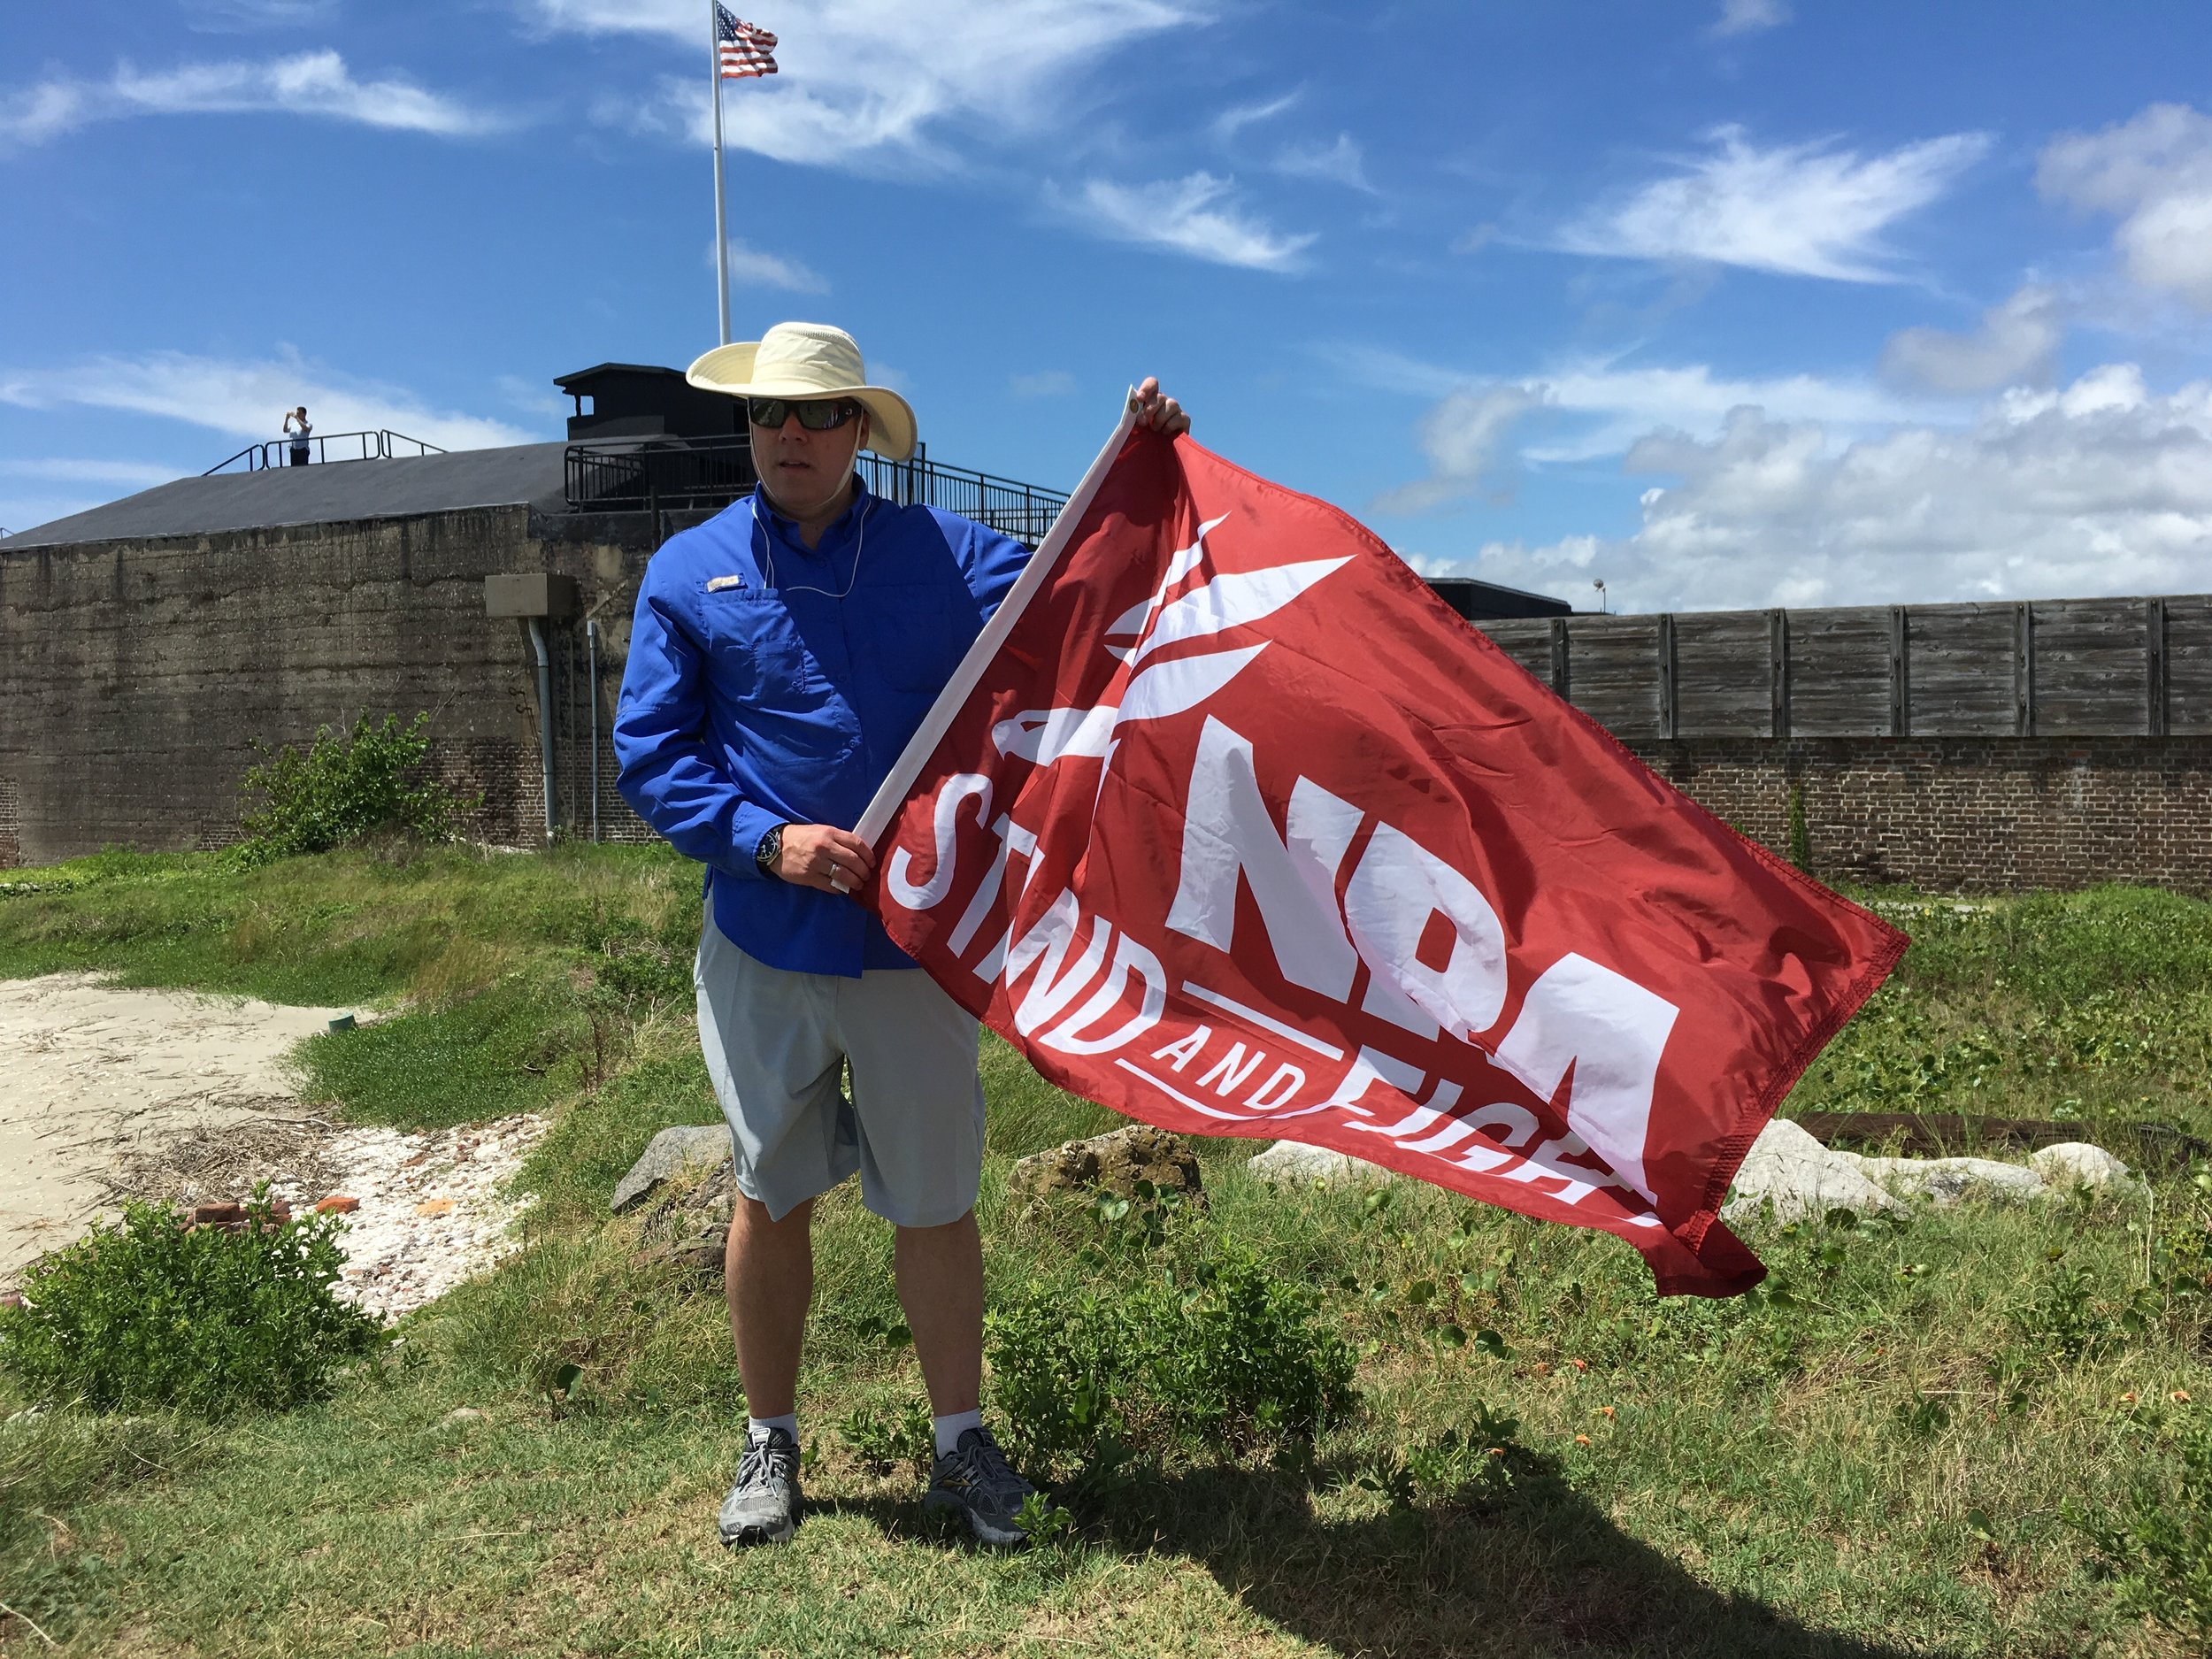 Timothy Knight's Timeline - Director - National Rifle Association of AmericaCurrently serving in his 2nd Term 2018-2021First elected by NRA Members in 2015 & Working with gun owners across the Republic since 2013Lifelong shooter